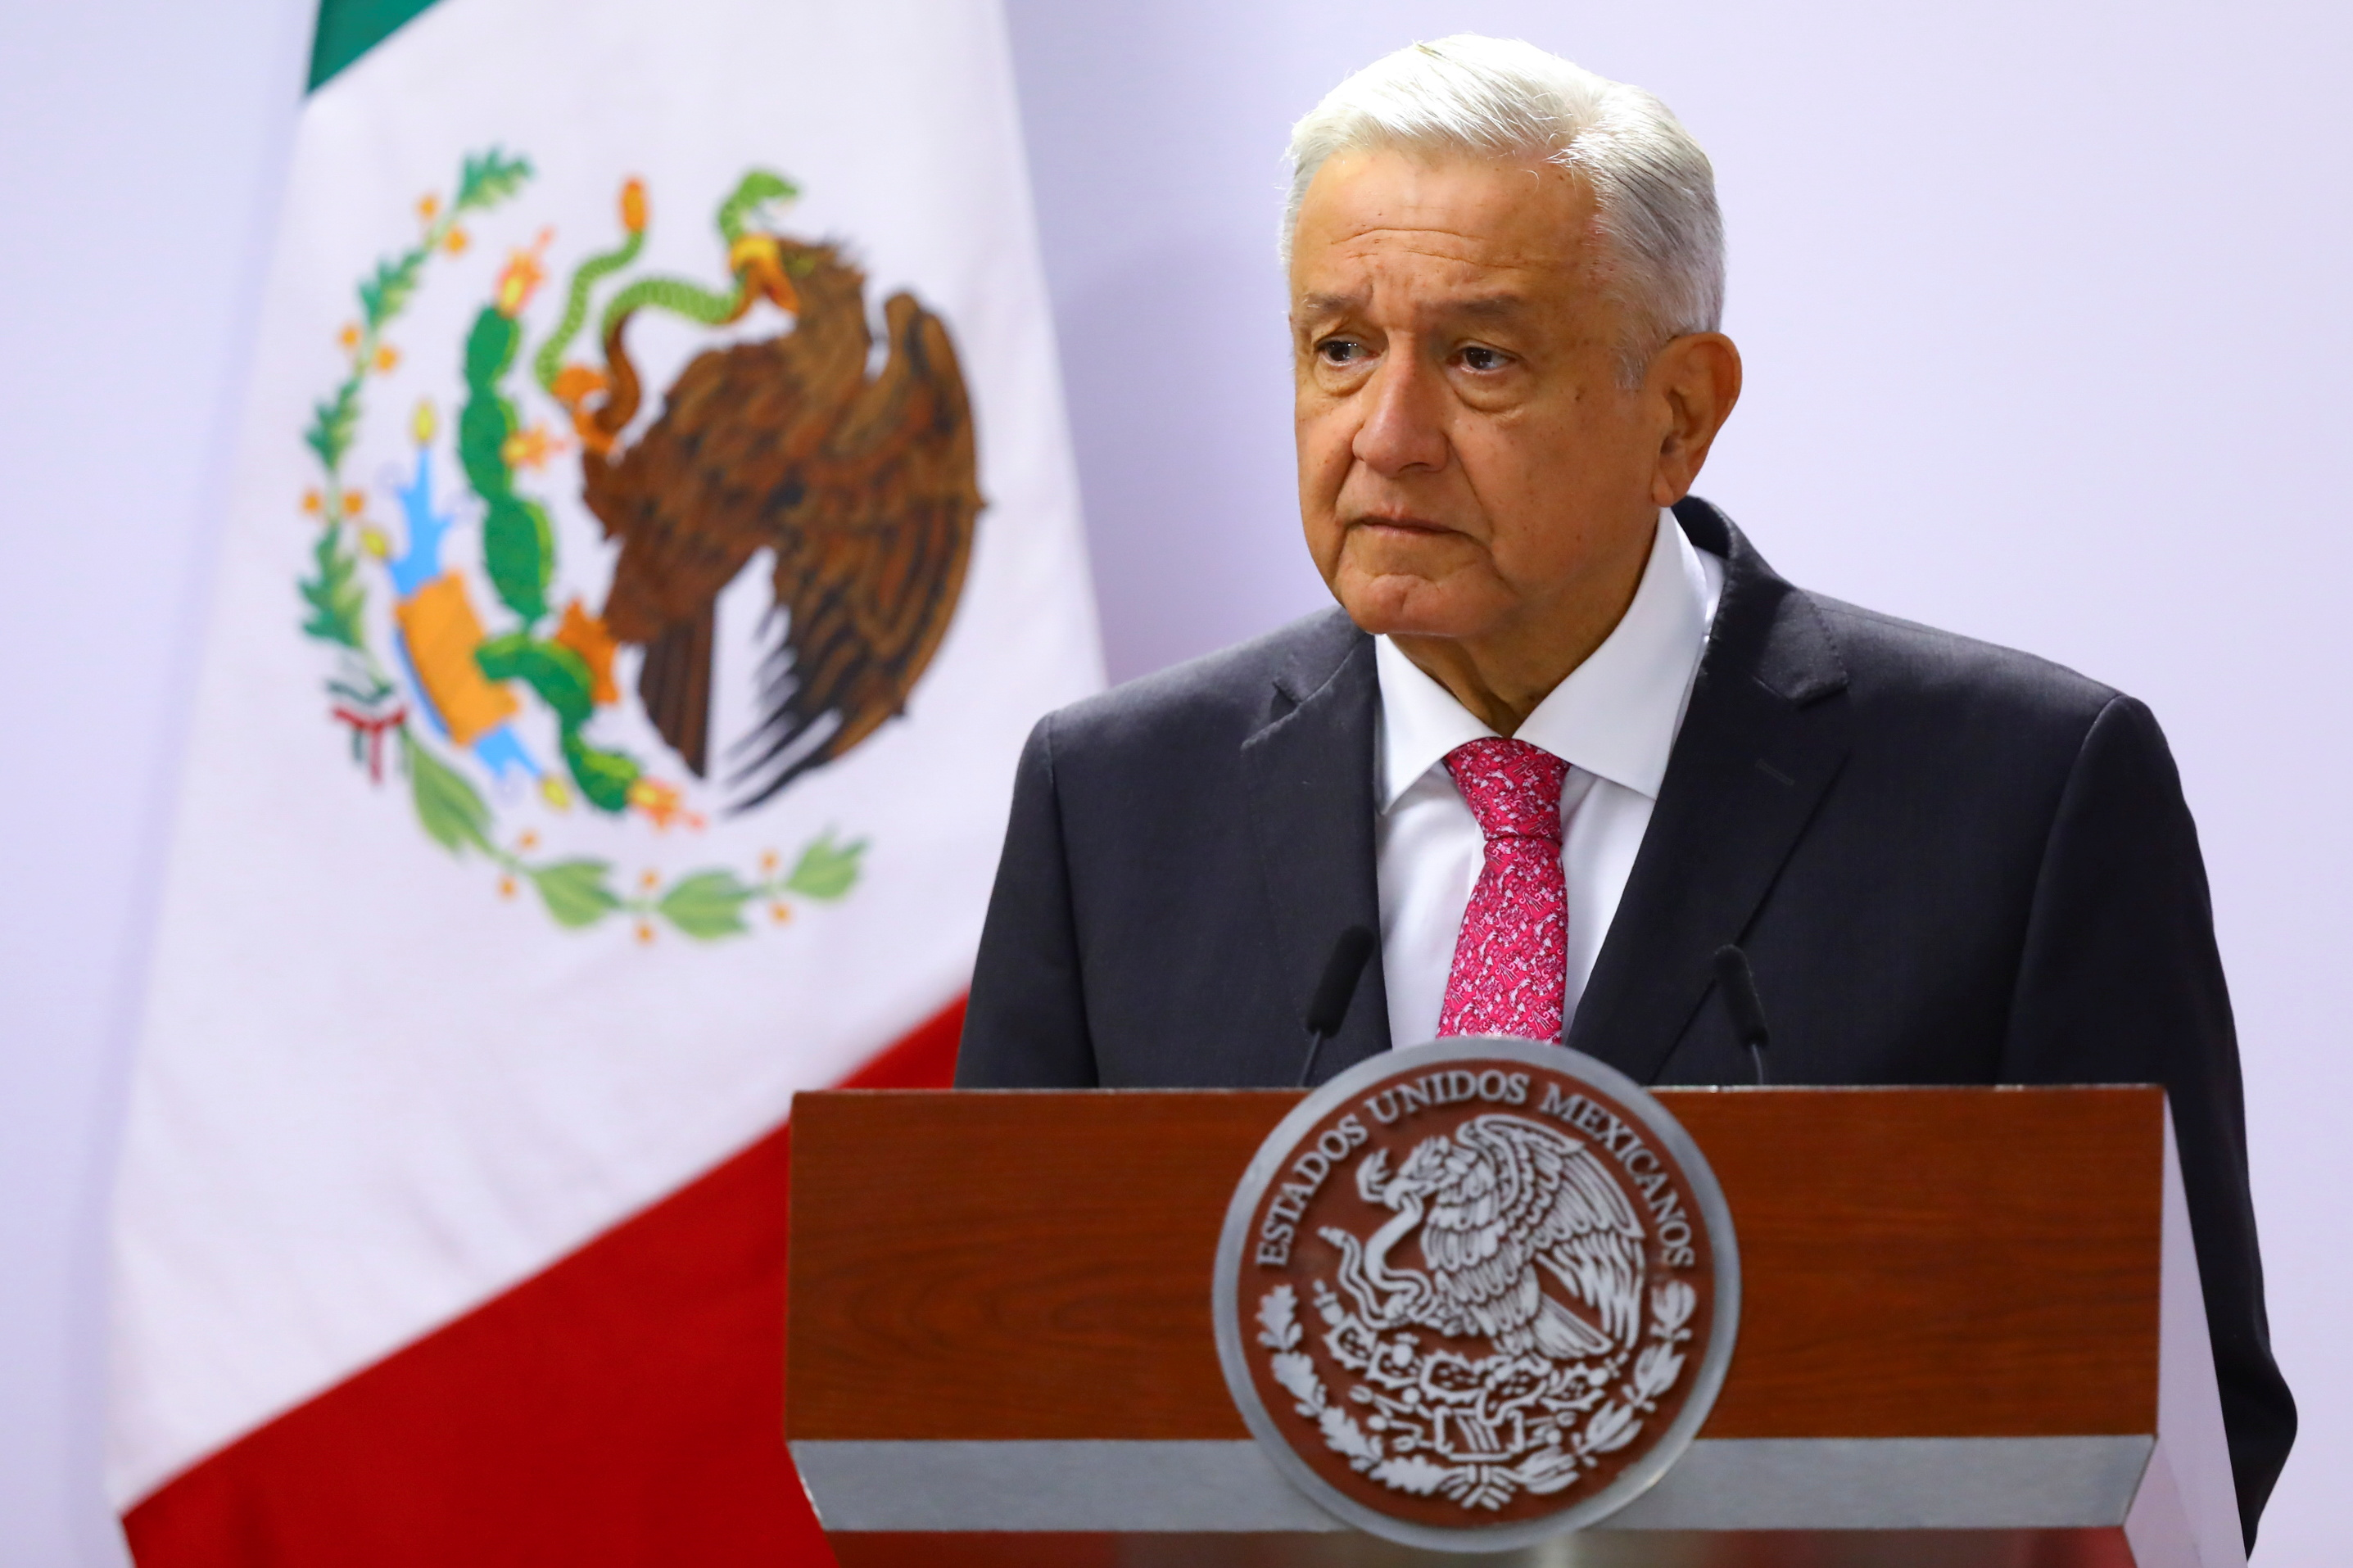 Mexico's President Andres Manuel Lopez Obrador delivers a speech on the third anniversary of his presidential election victory at National Palace in Mexico City, Mexico July 1, 2021. REUTERS/Edgard Garrido